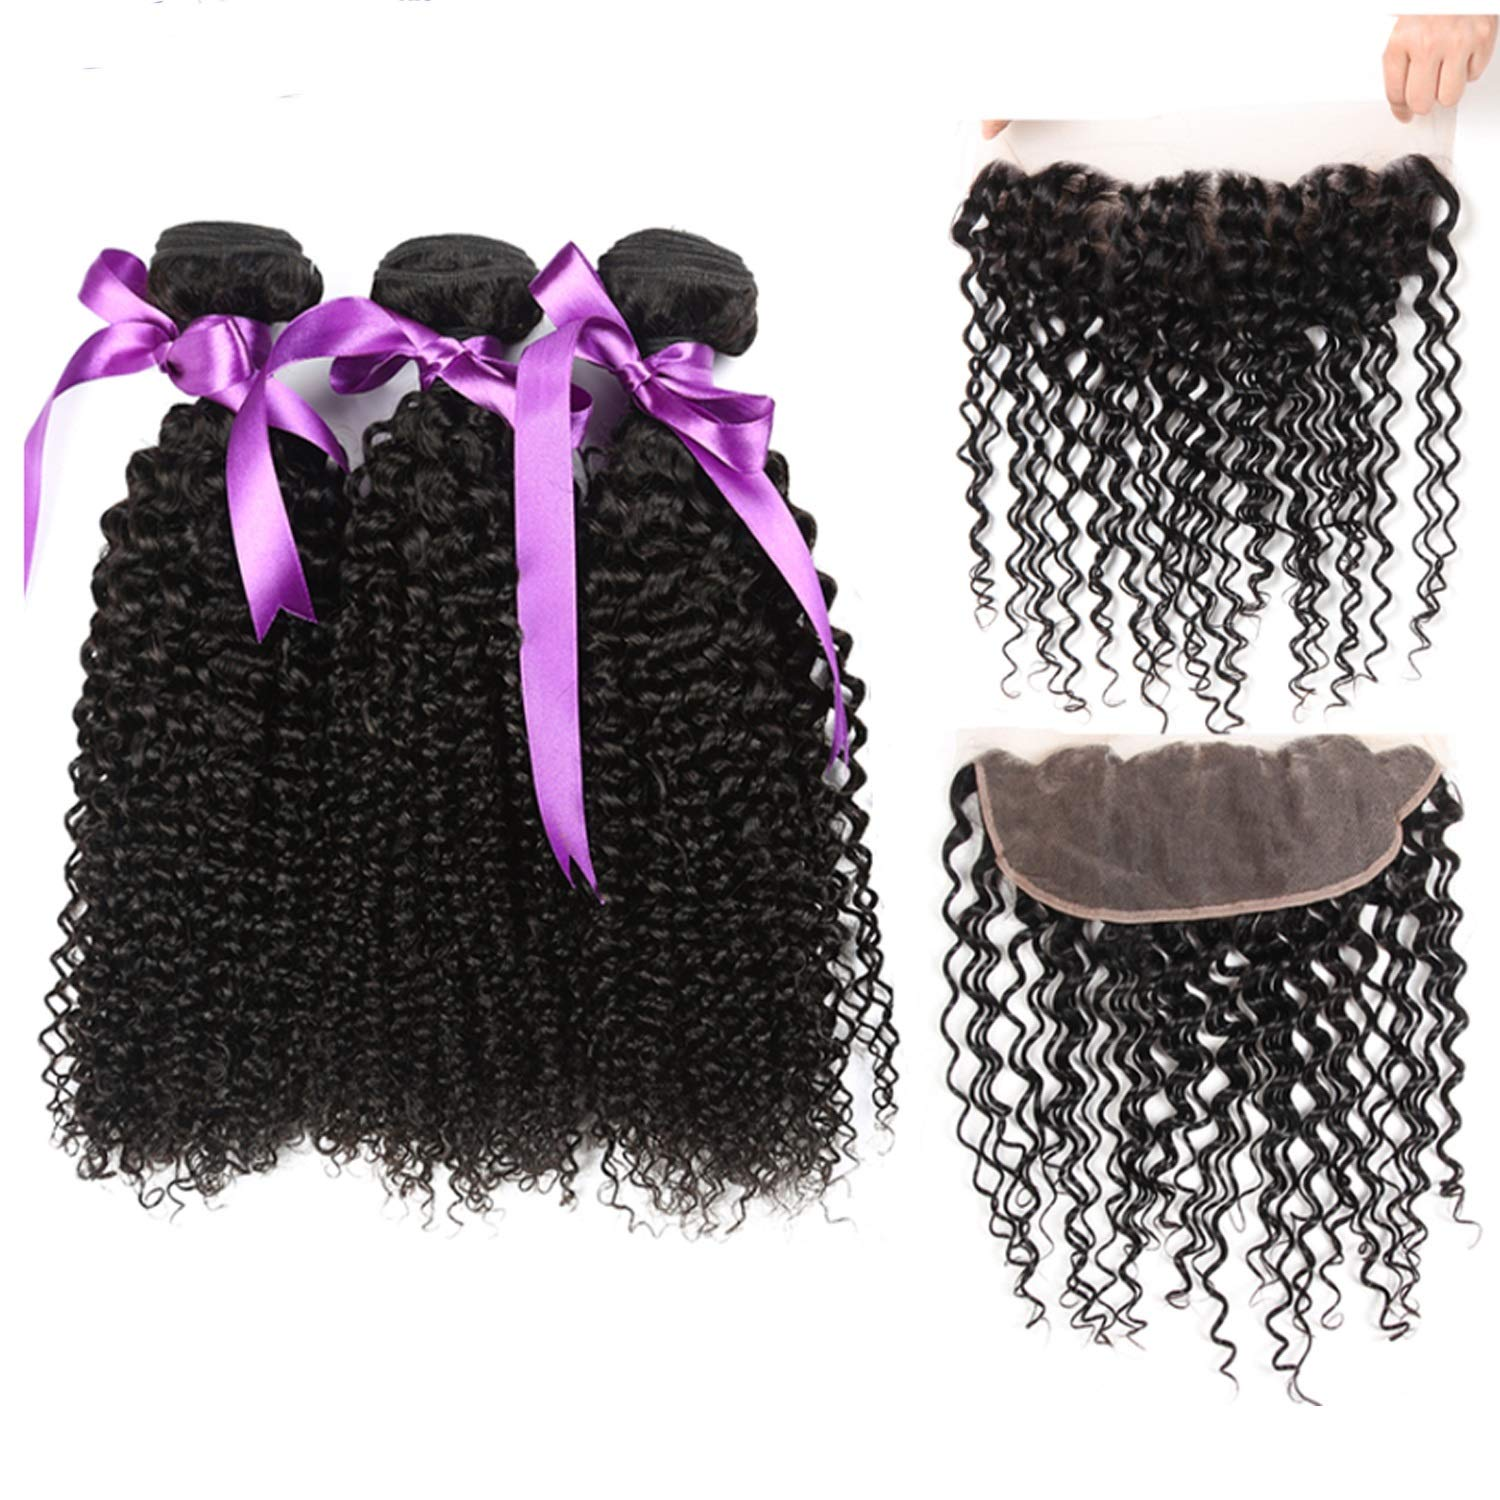 Hair Extension Brazilian Kinky Curly Wave 3 Bundles With 134 Lace Frontal Closure Hair Weave Bundles Human Hair Extension (Length : 26 26 26Cl20)